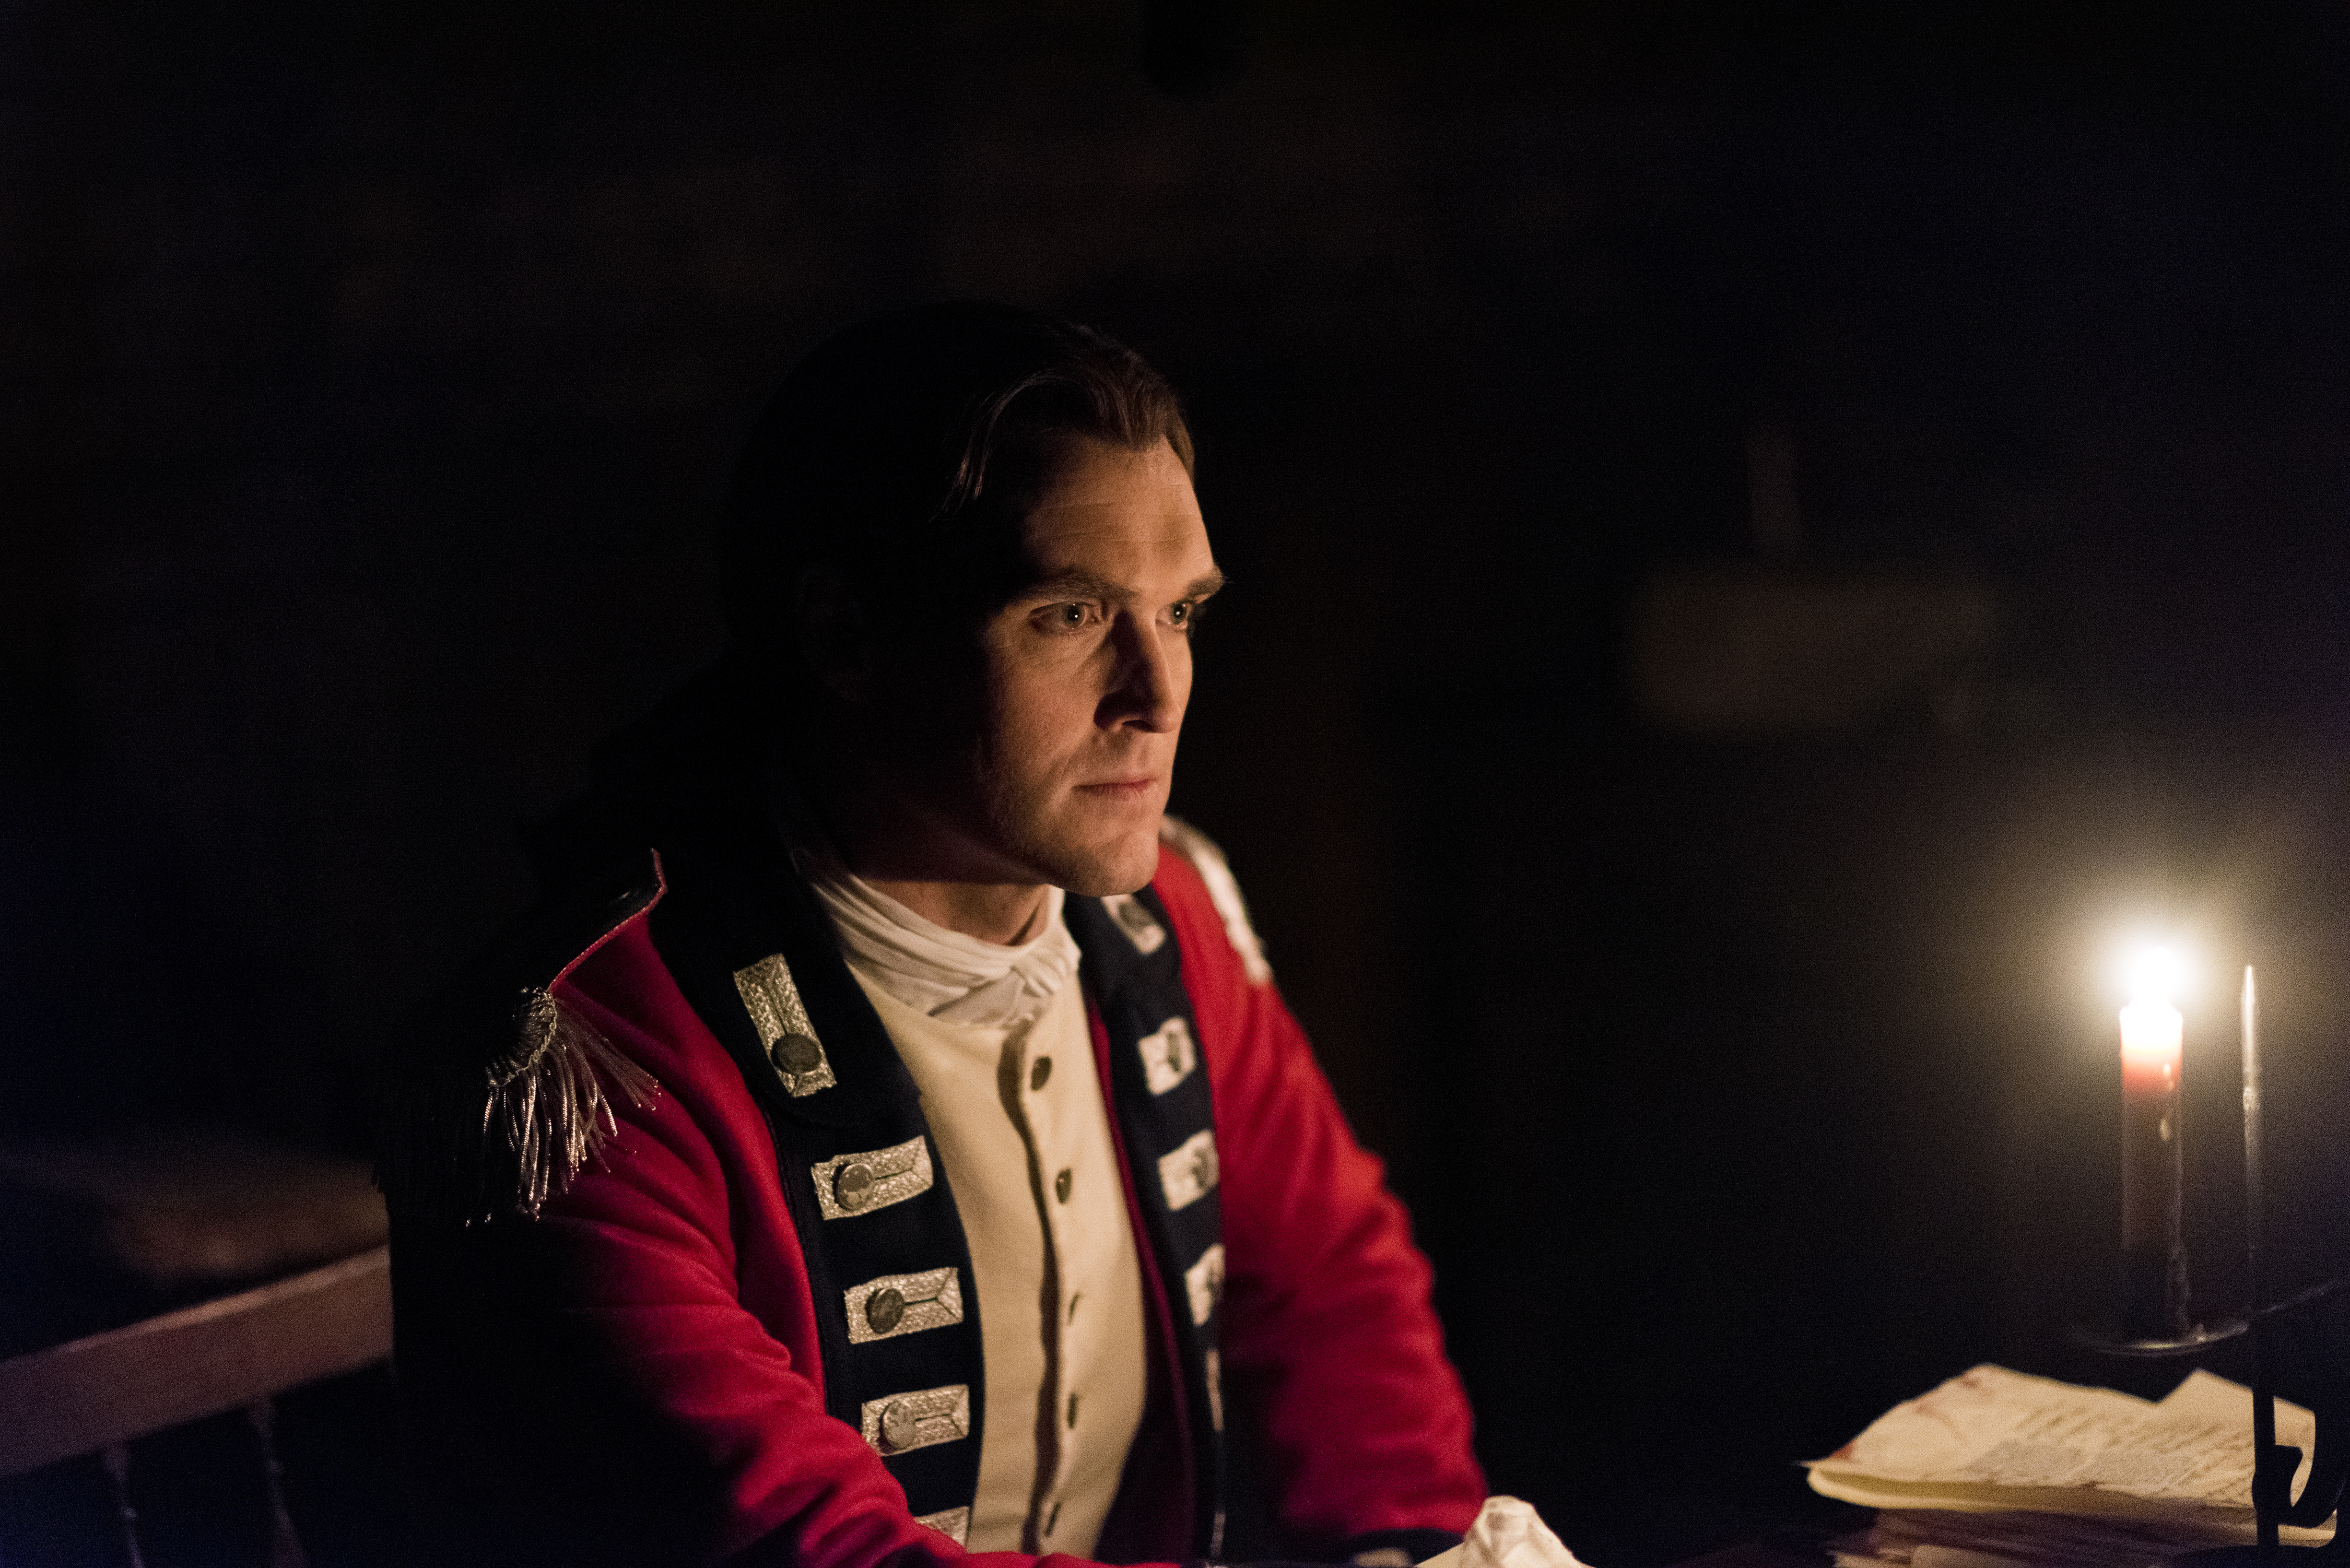 Turn: Washington's Spies on AMC: Cancelled or Season 5